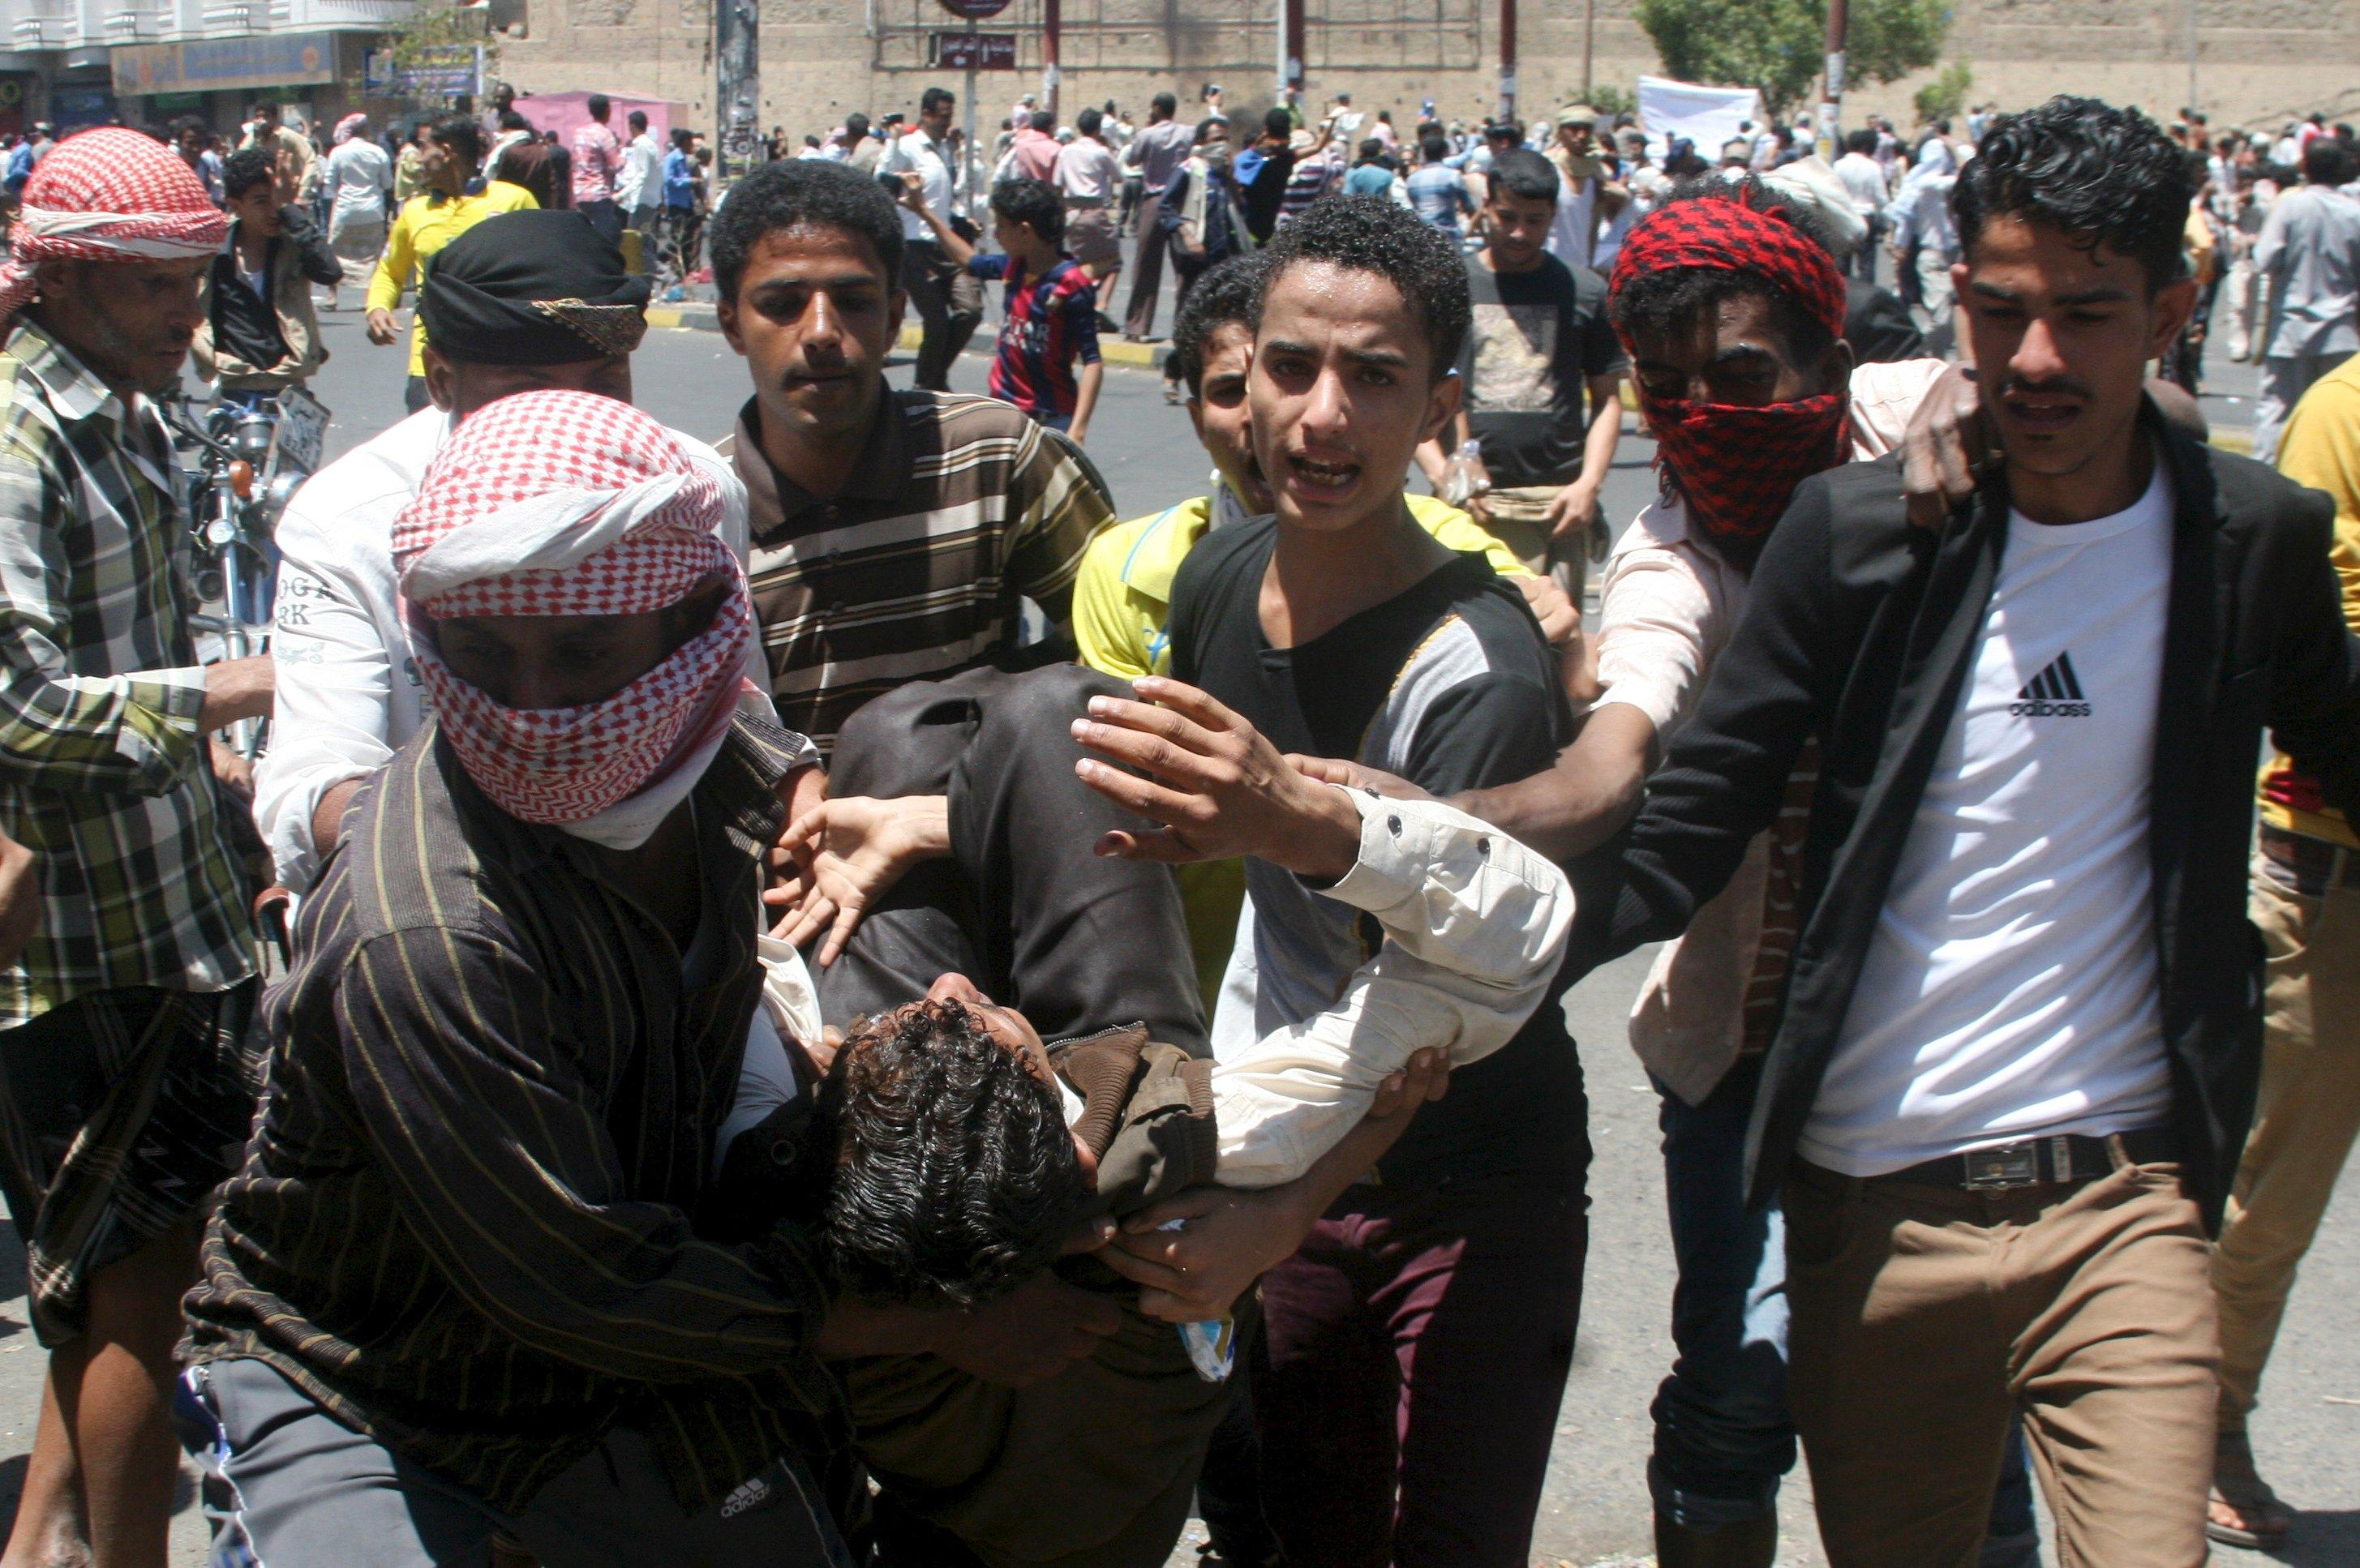 Anti-Houthi protesters carry an injured fellow protester during clashes with Houthi fighters in Yemen's southwestern city of Taiz March 22, 2015. Houthi fighters opposed to Yemen's president took over the central city of Taiz in an escalation of a power struggle diplomats say risks drawing in neighboring oil giant Saudi Arabia and its main regional rival Iran. Residents of Taiz, on a main road from the capital Sanaa to the country's second city of Aden, said that Houthi militias took over the city's military airport without a struggle from local authorities late on Saturday. REUTERS/Anees Mahyoub